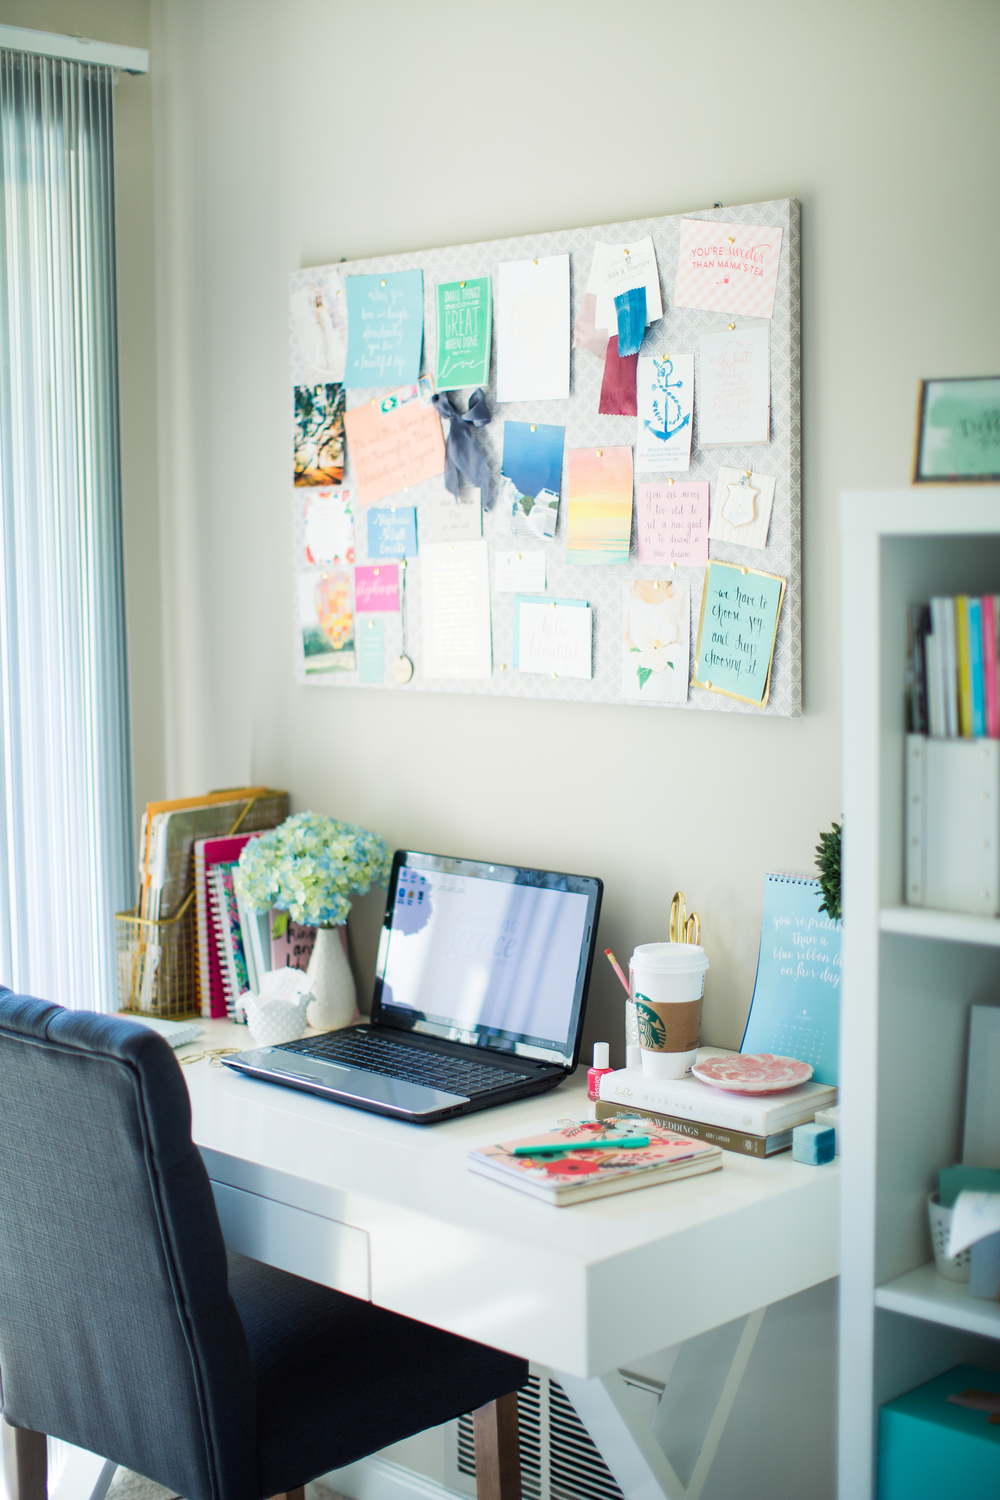 Home office inspiration | Colorful work space | Souther home tour | The School of Styling - theschoolofstyling.com